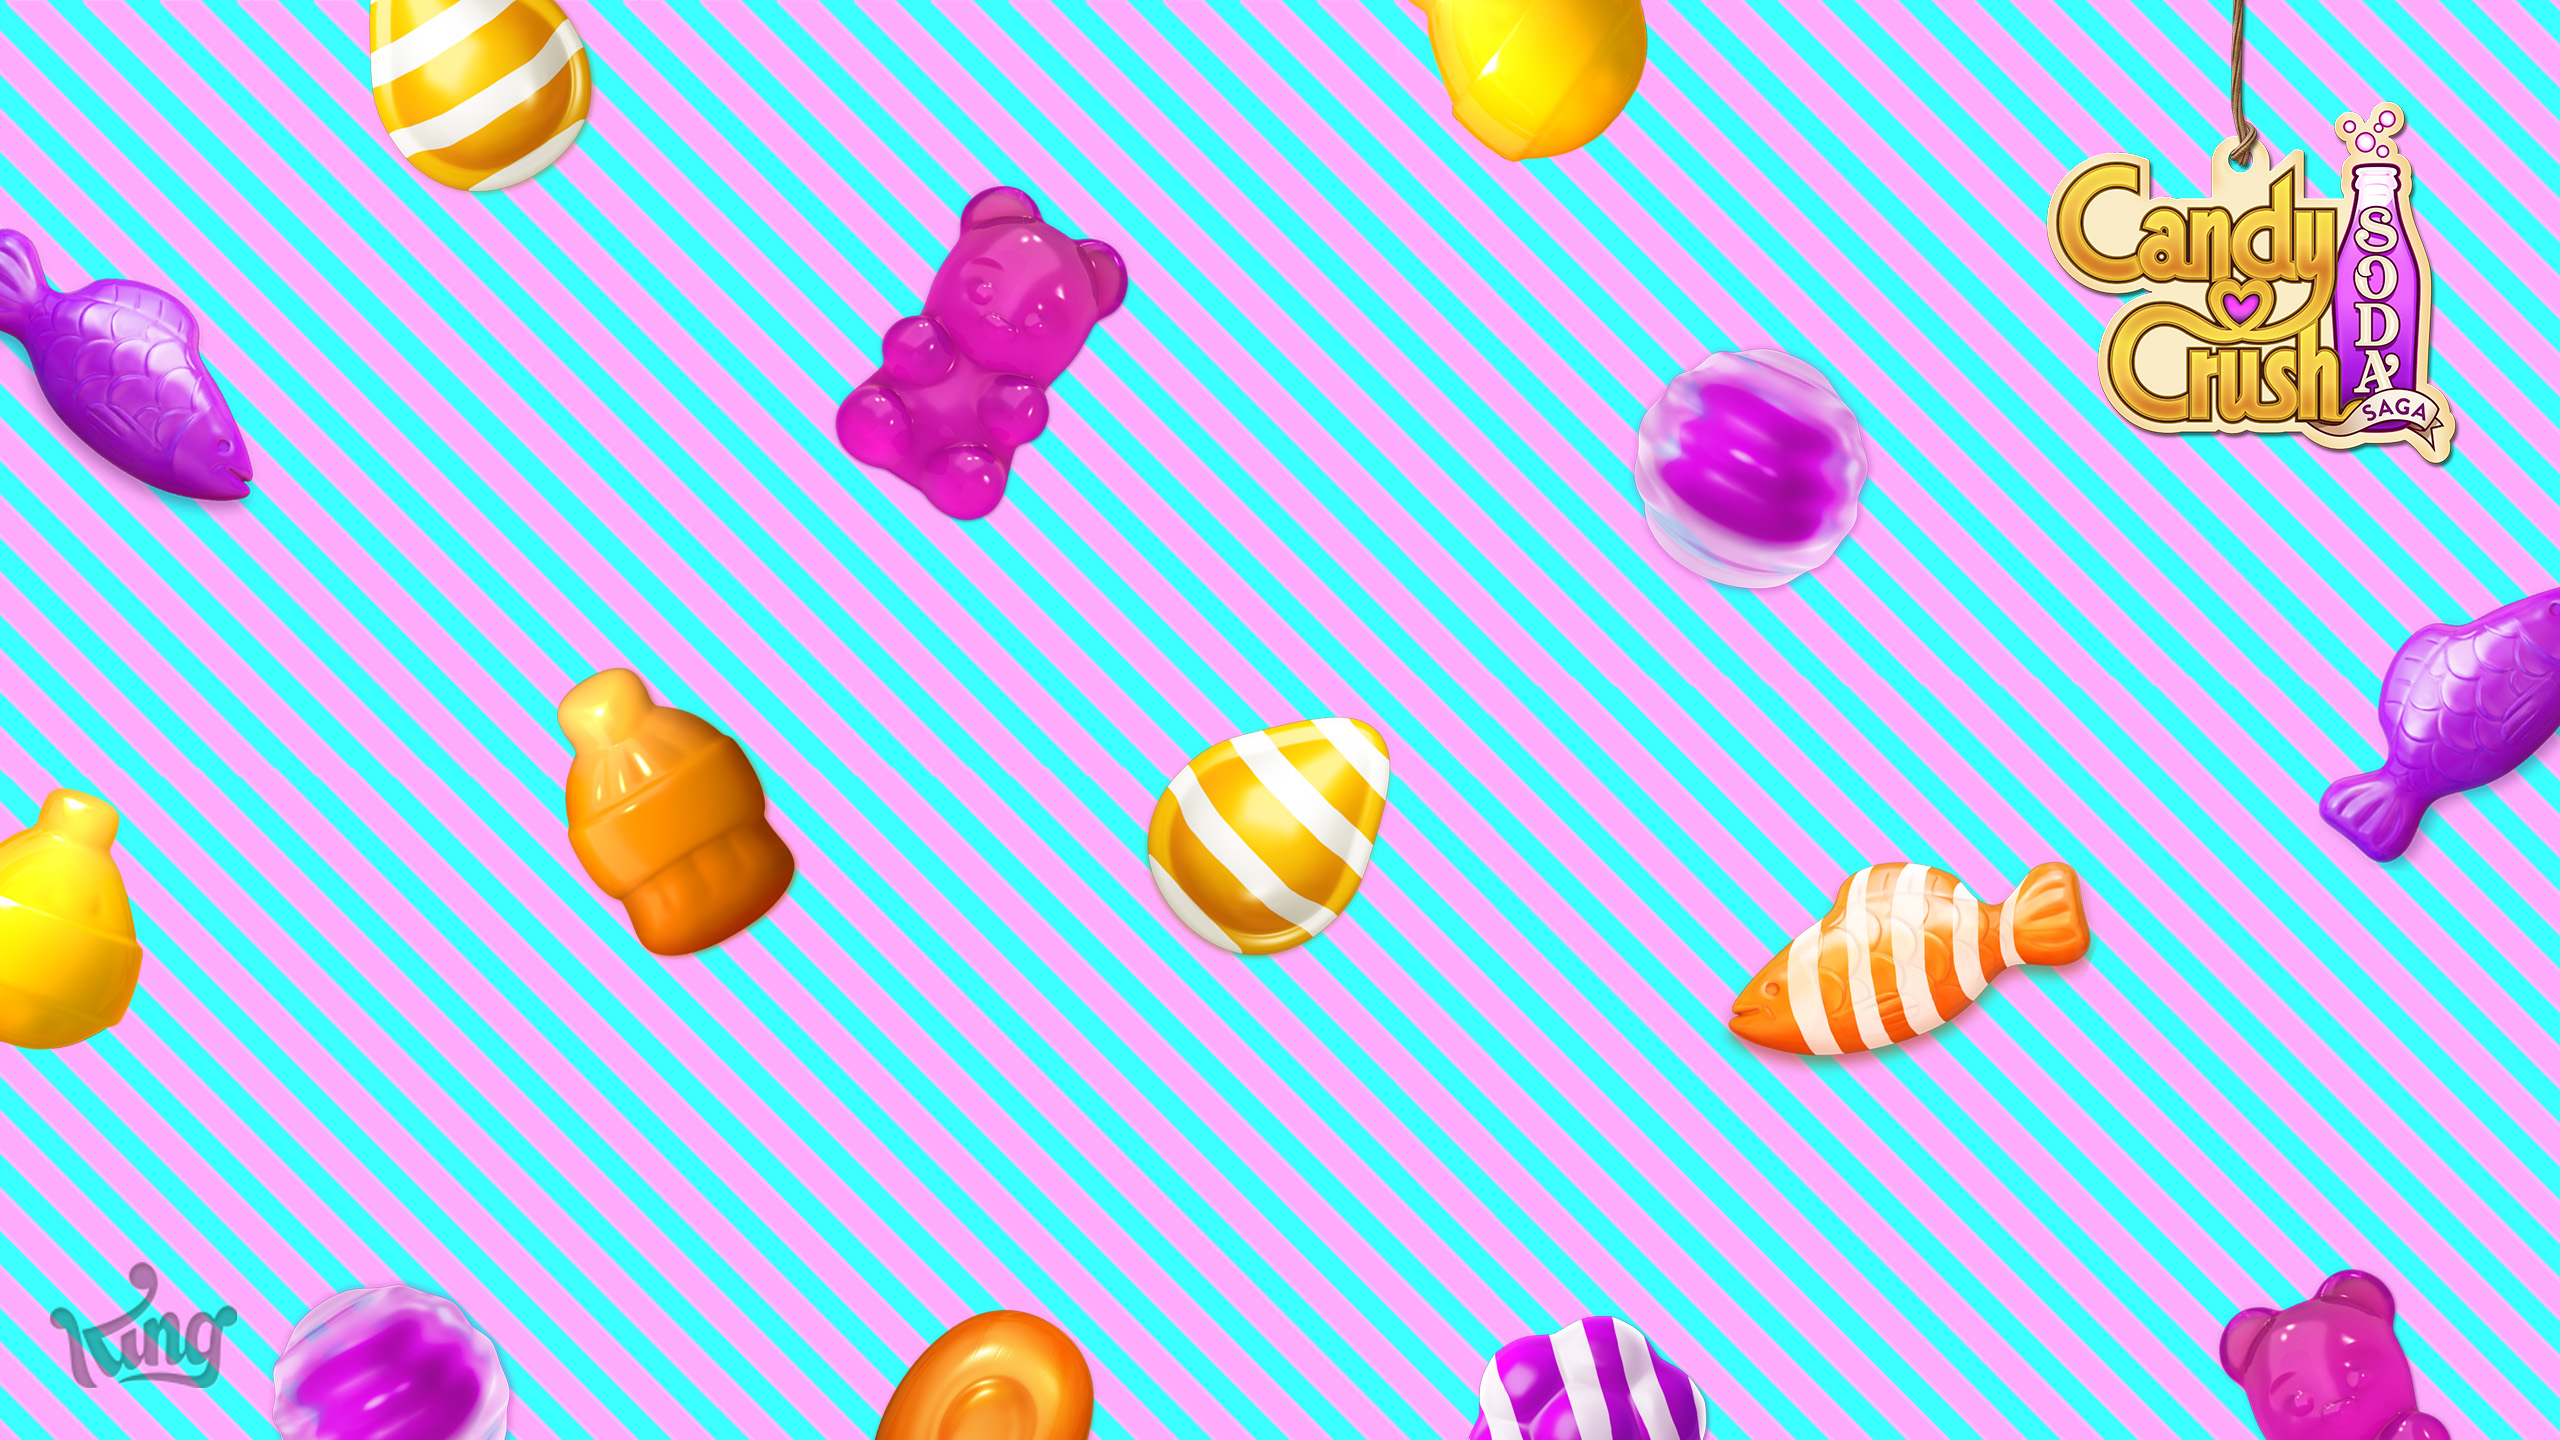 Candy Crush Wallpaper Wallpapersafari HD Wallpapers Download Free Images Wallpaper [1000image.com]